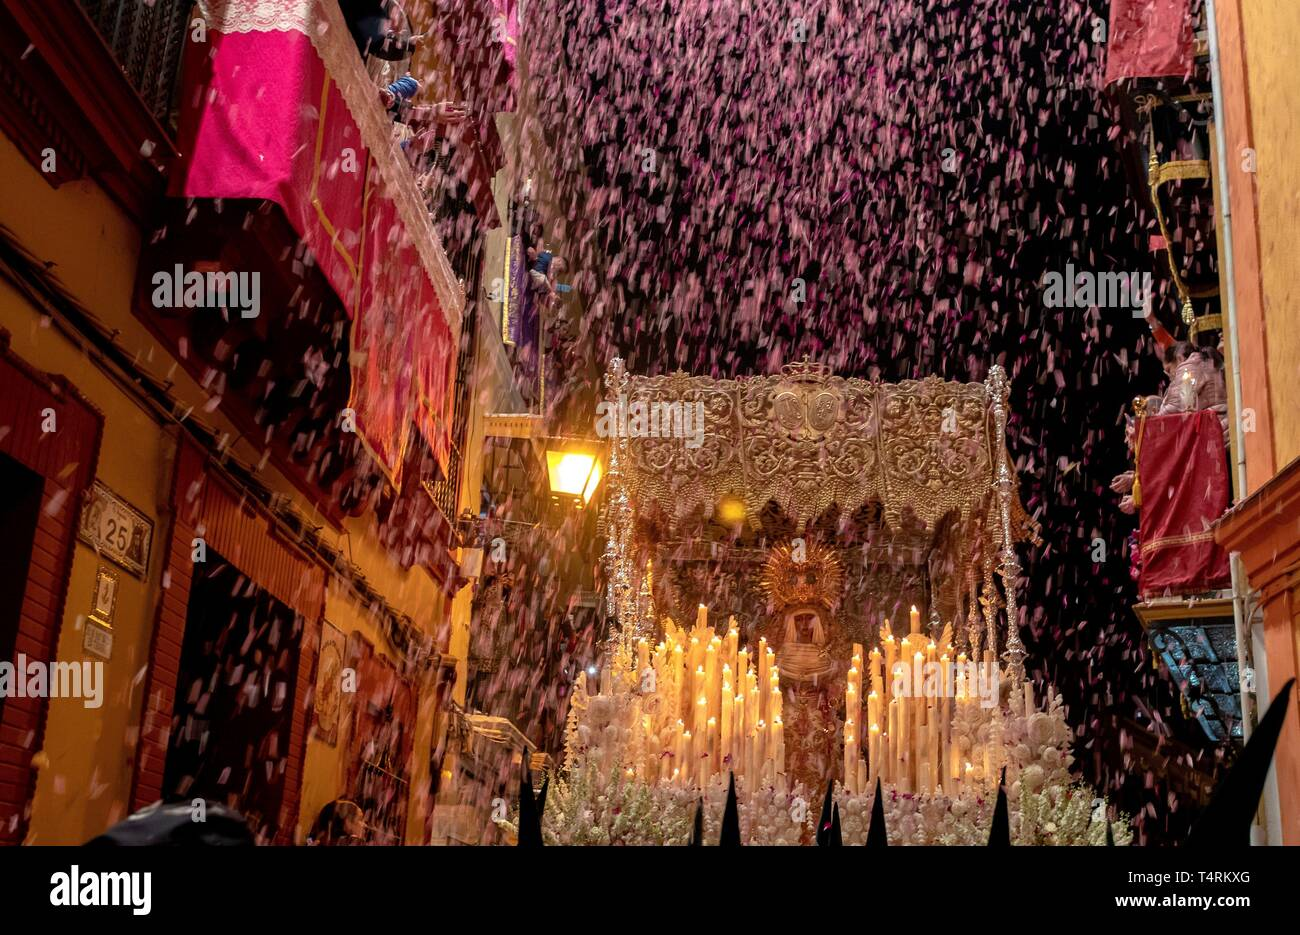 Petals are thrown from the balconies as the Virgin of Esperanza de Triana leaves its temple at the neighborhood of Triana during the 'Madruga' (lit: Small Hours) processions in Seville, Spain, 19 April 2019. EFE/ Julio Munoz - Stock Image